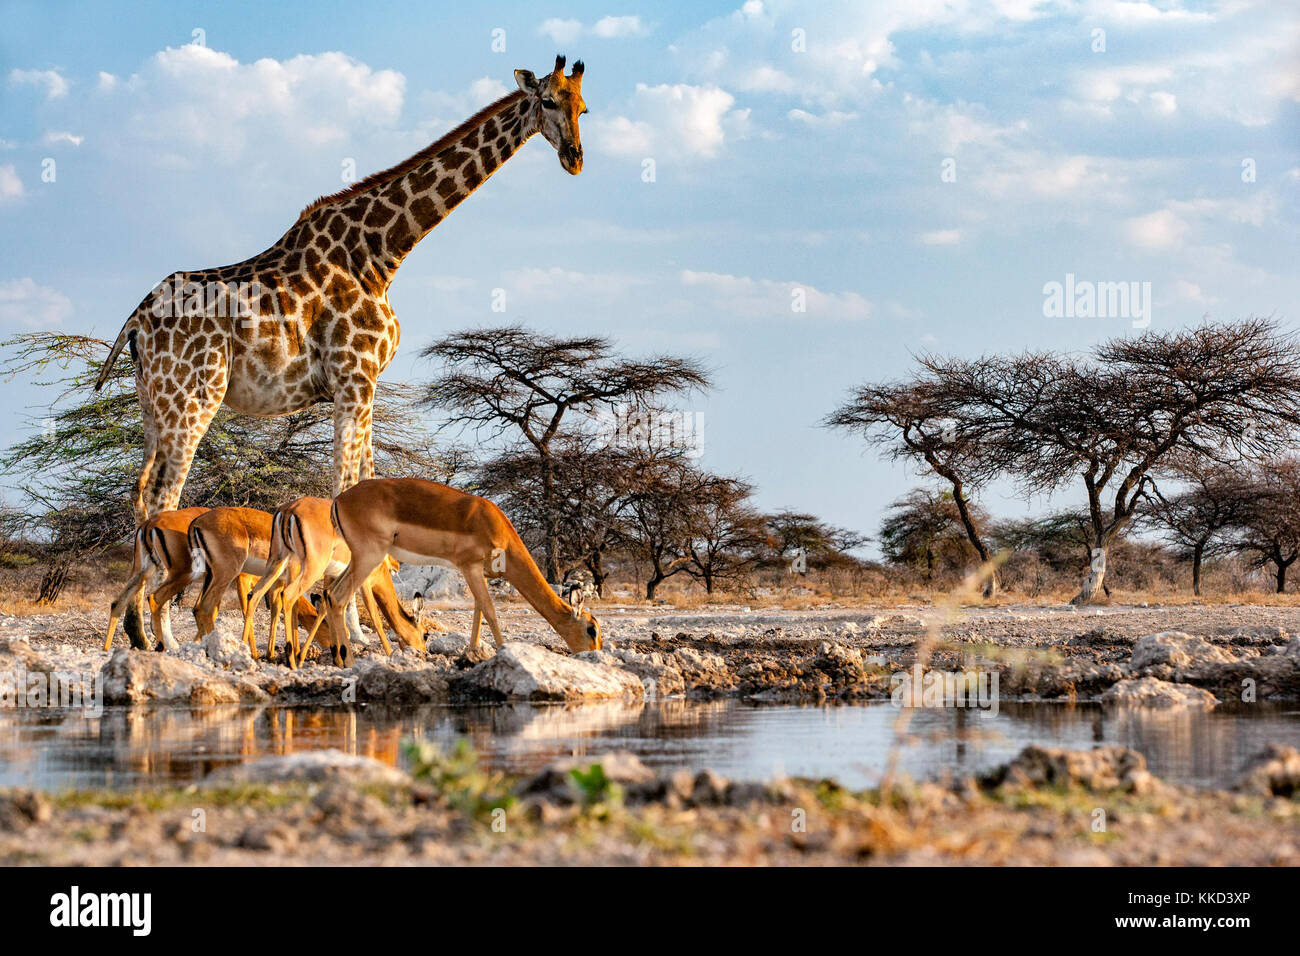 Girafe avec impala à Onkolo cacher, Onguma Game Reserve, la Namibie, l'Afrique Photo Stock